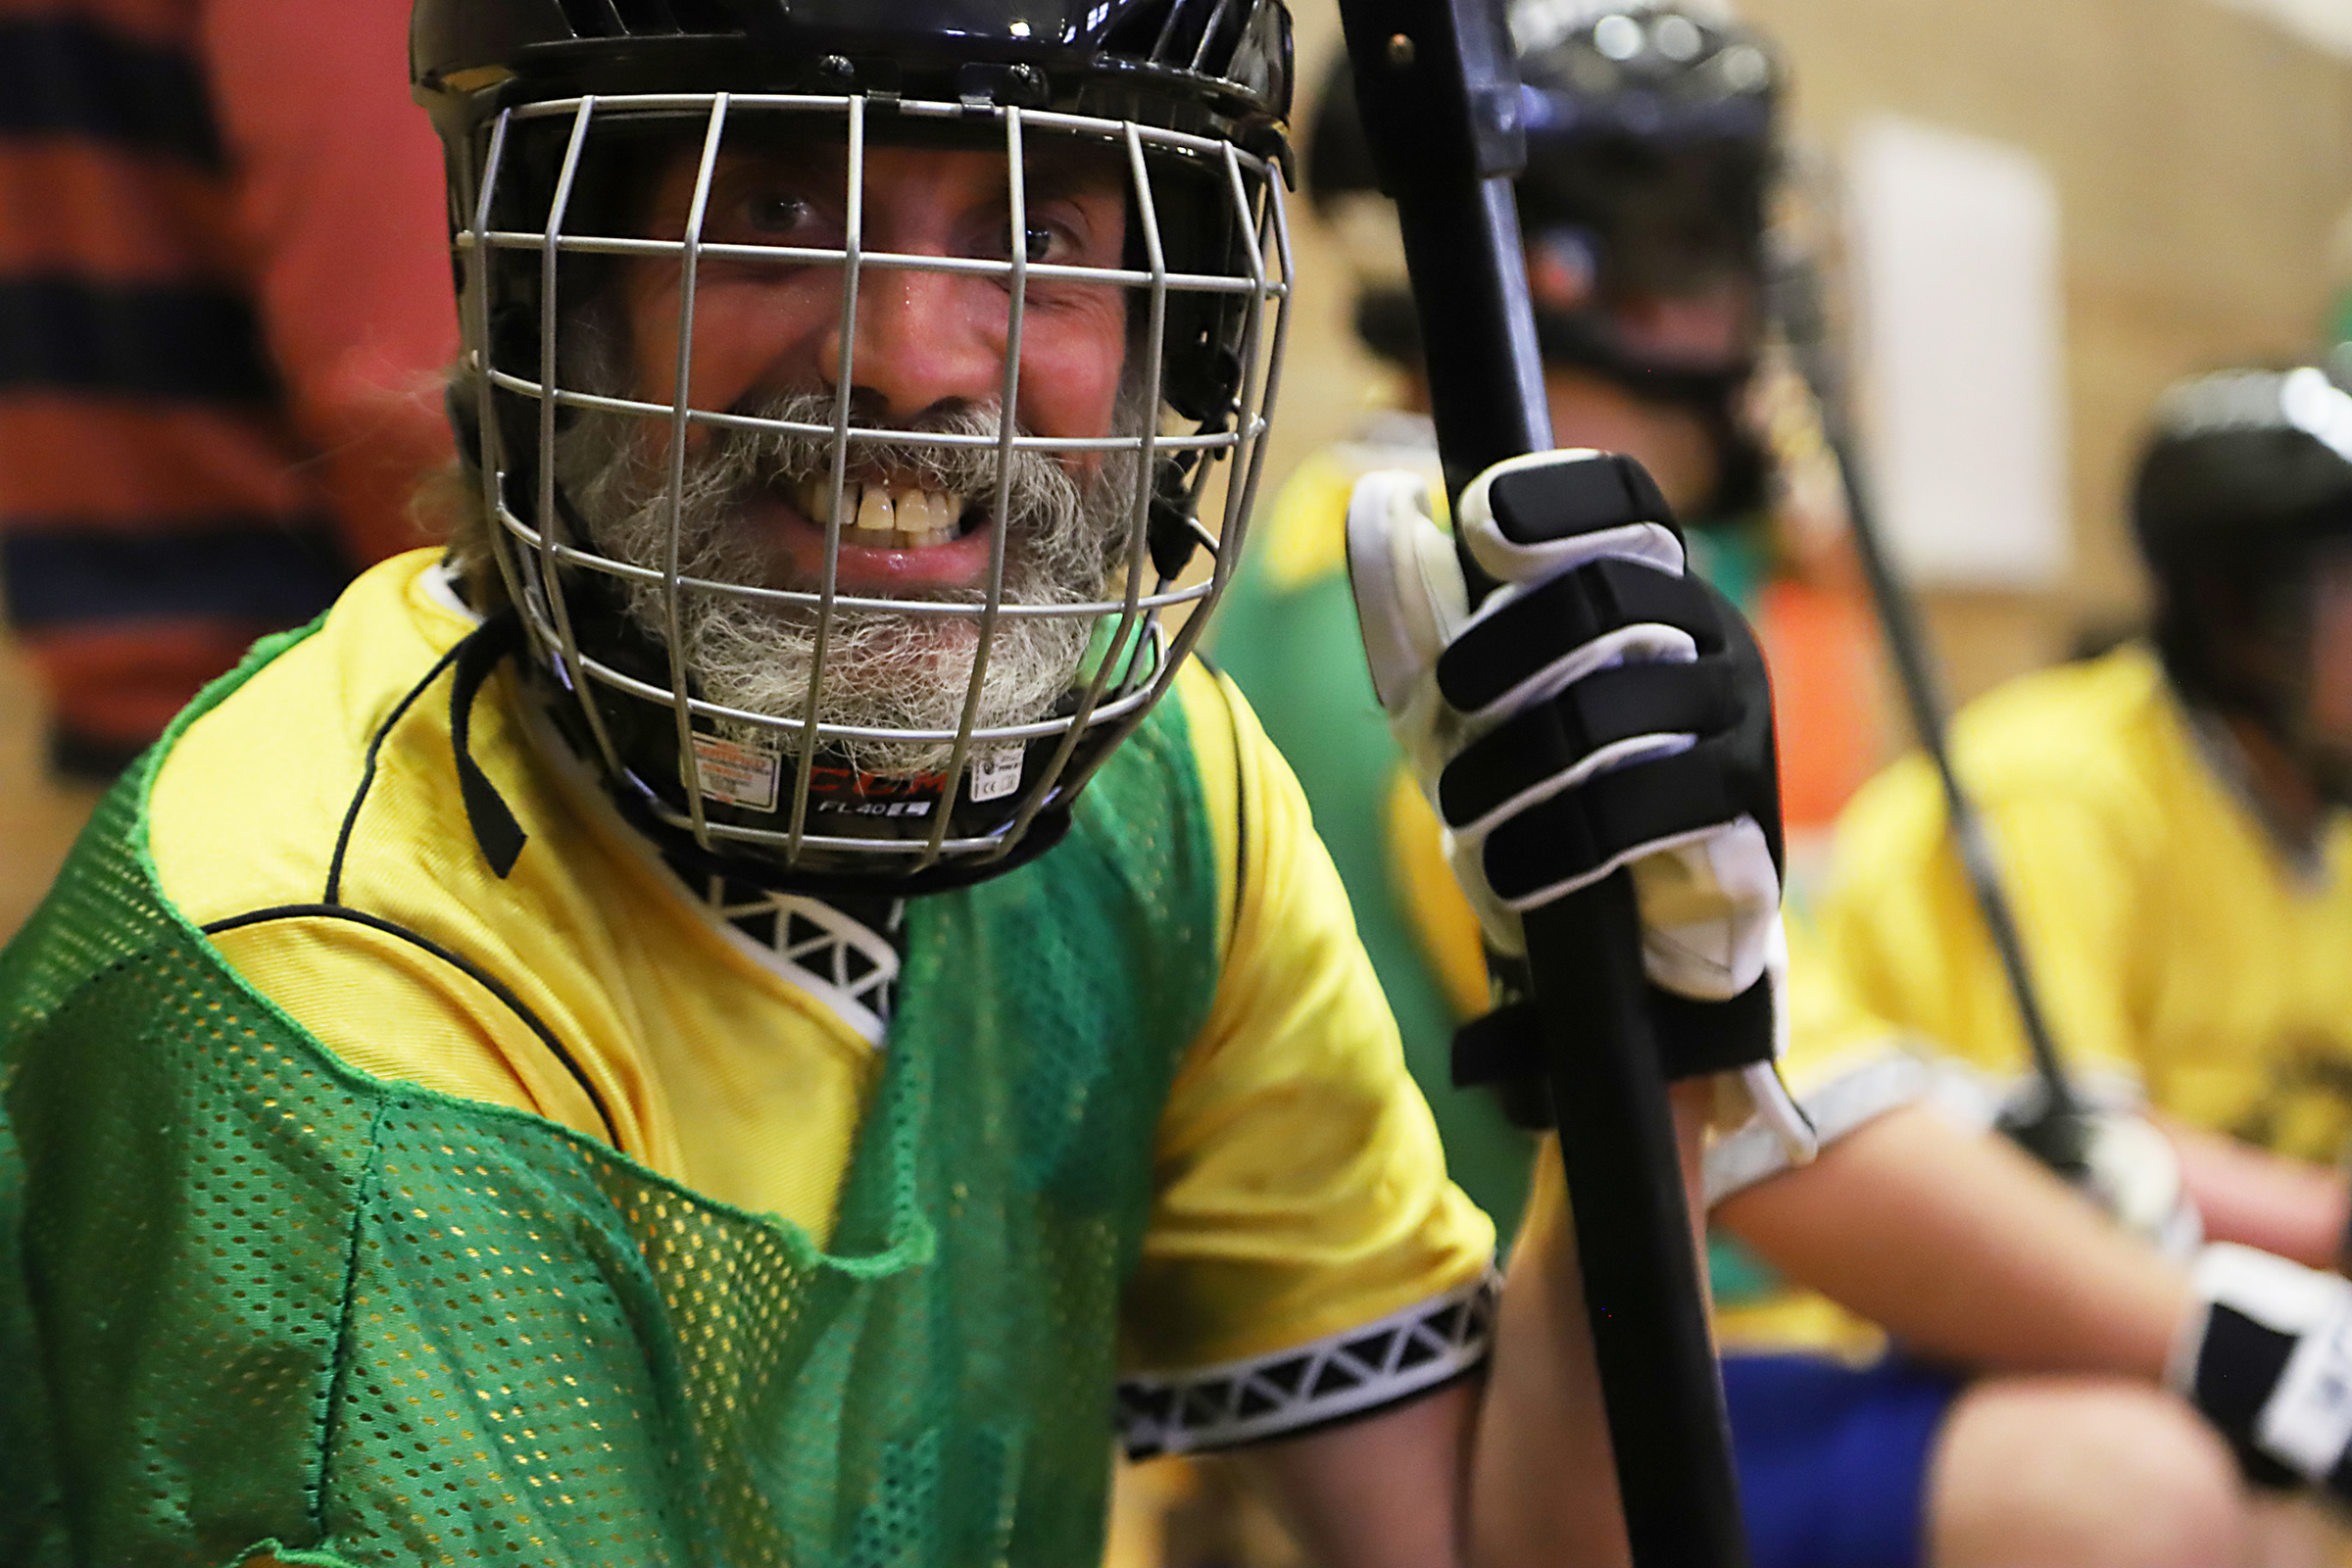 A Special Olympics athlete wearing a hockey mask smiles